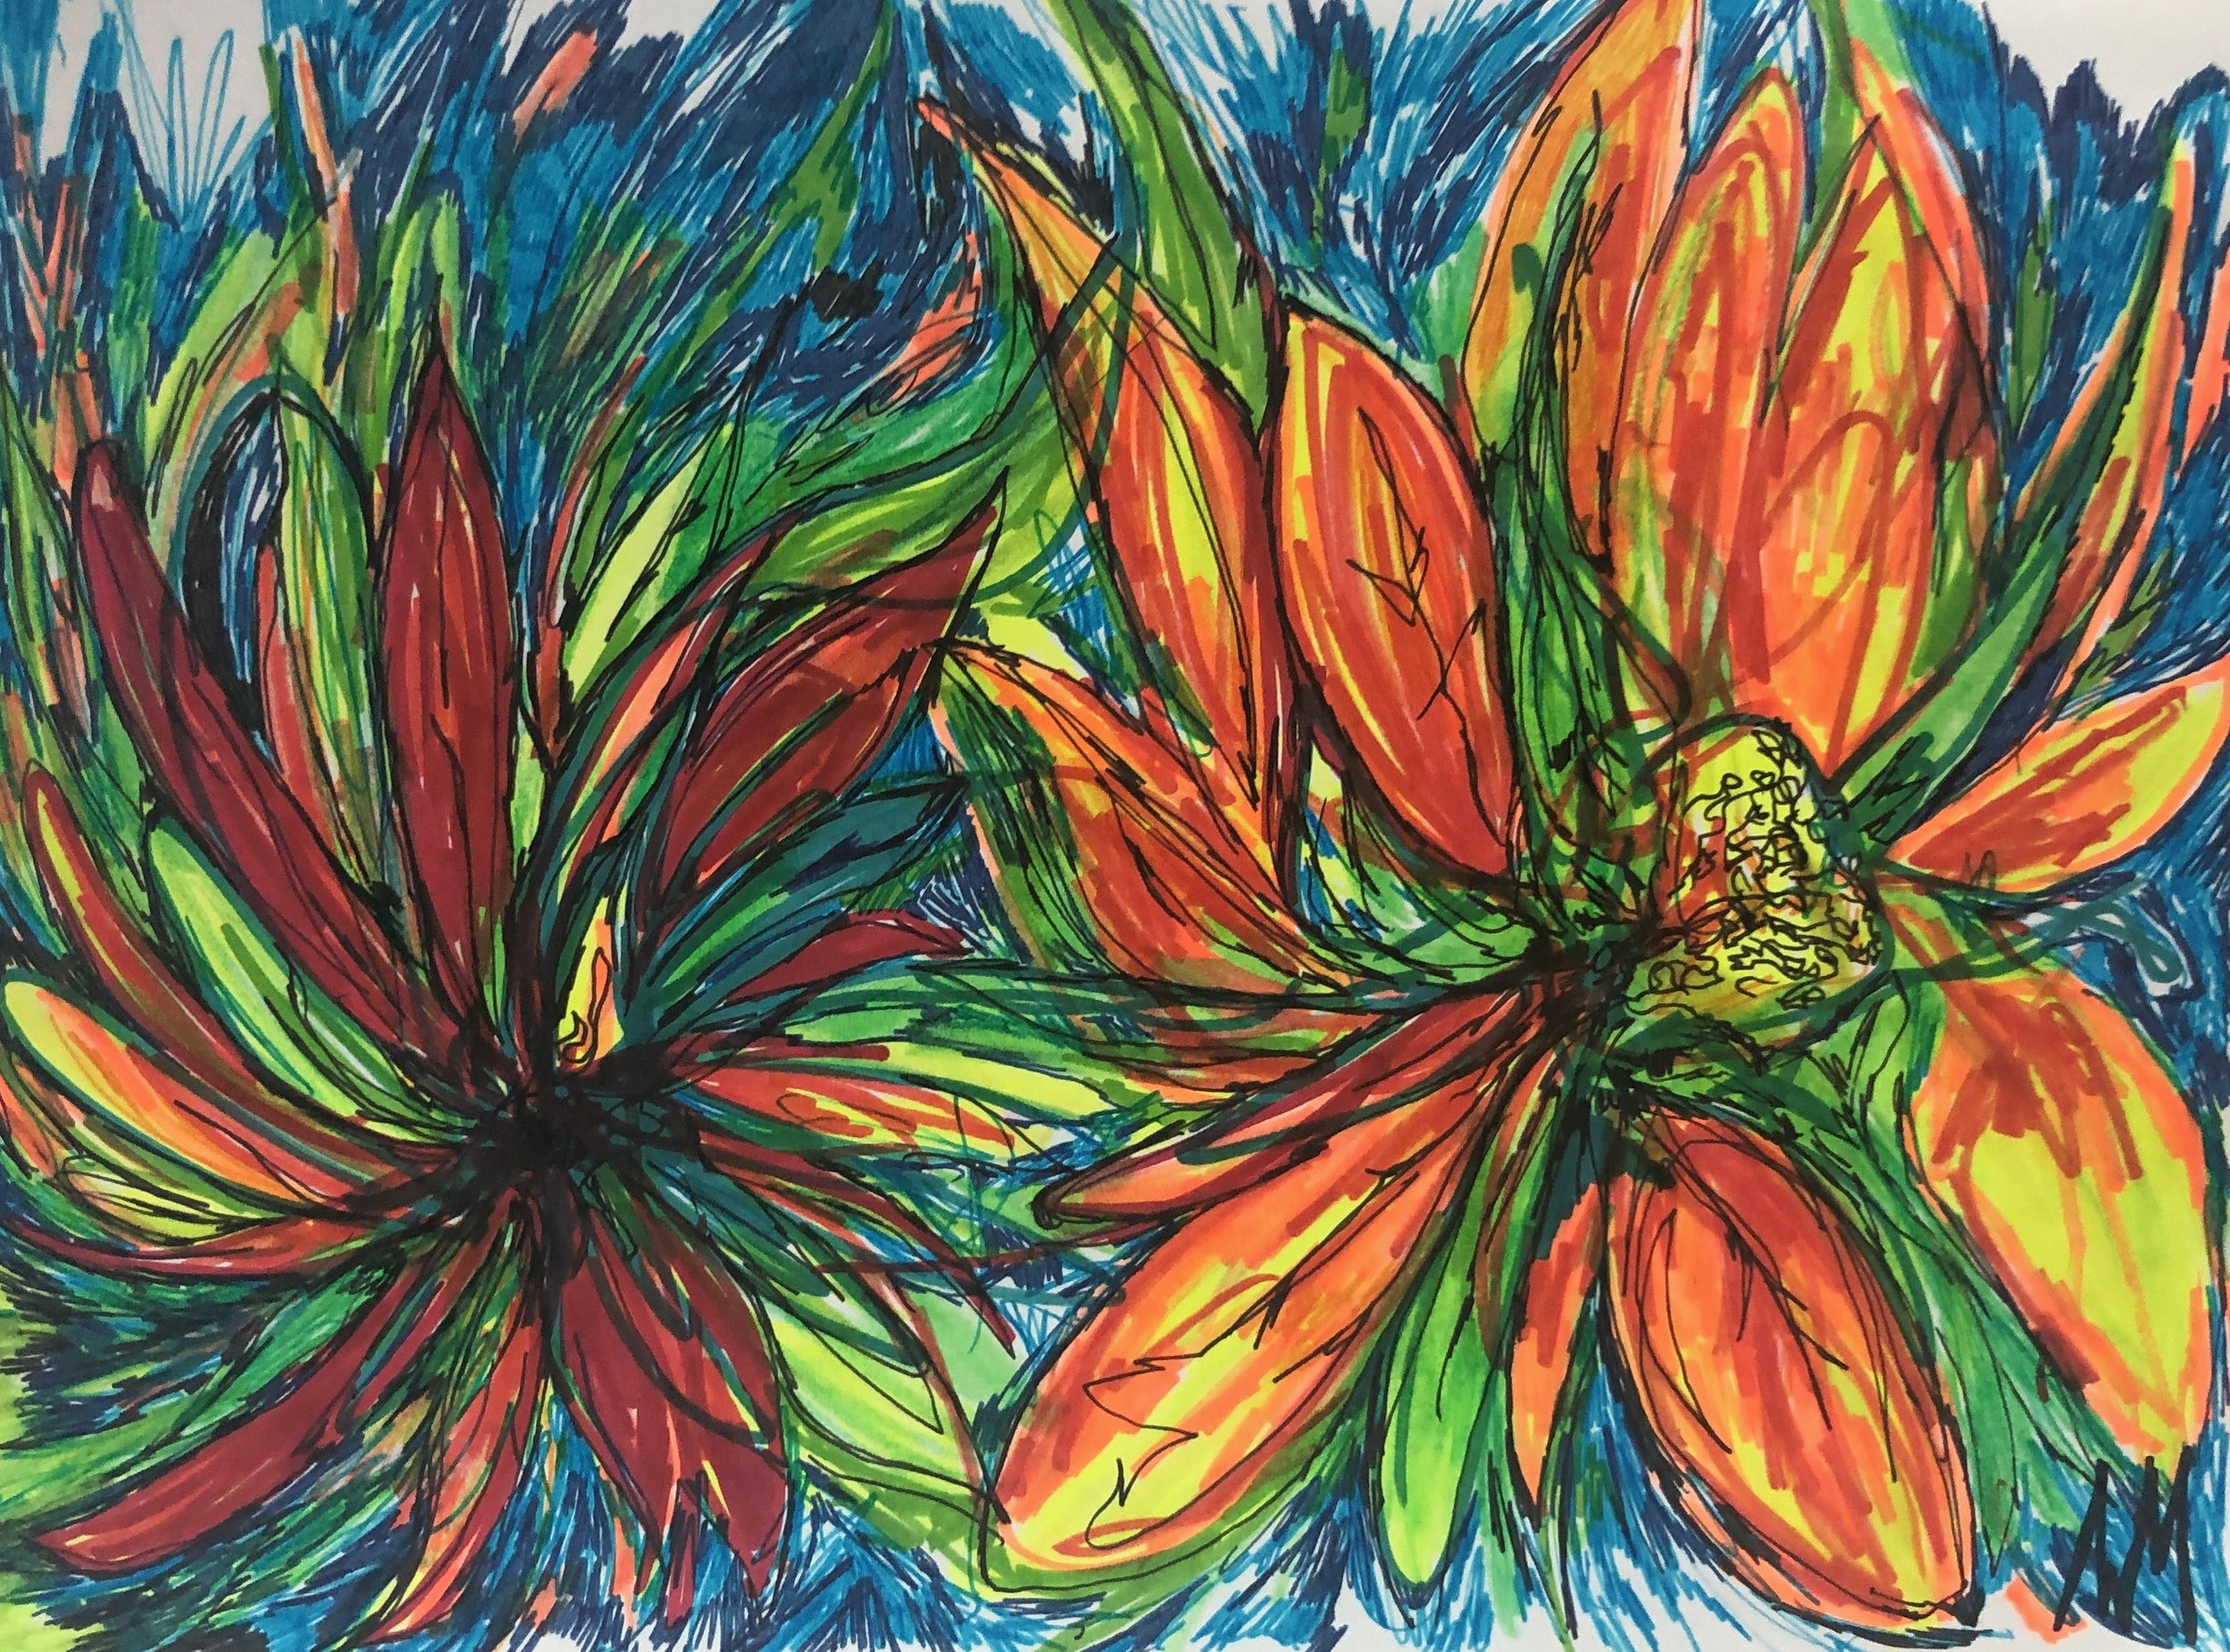 Wildflowers - A 9 x 12 Original Work on Paper Utilizing Pen, Marker, and Highlighter.